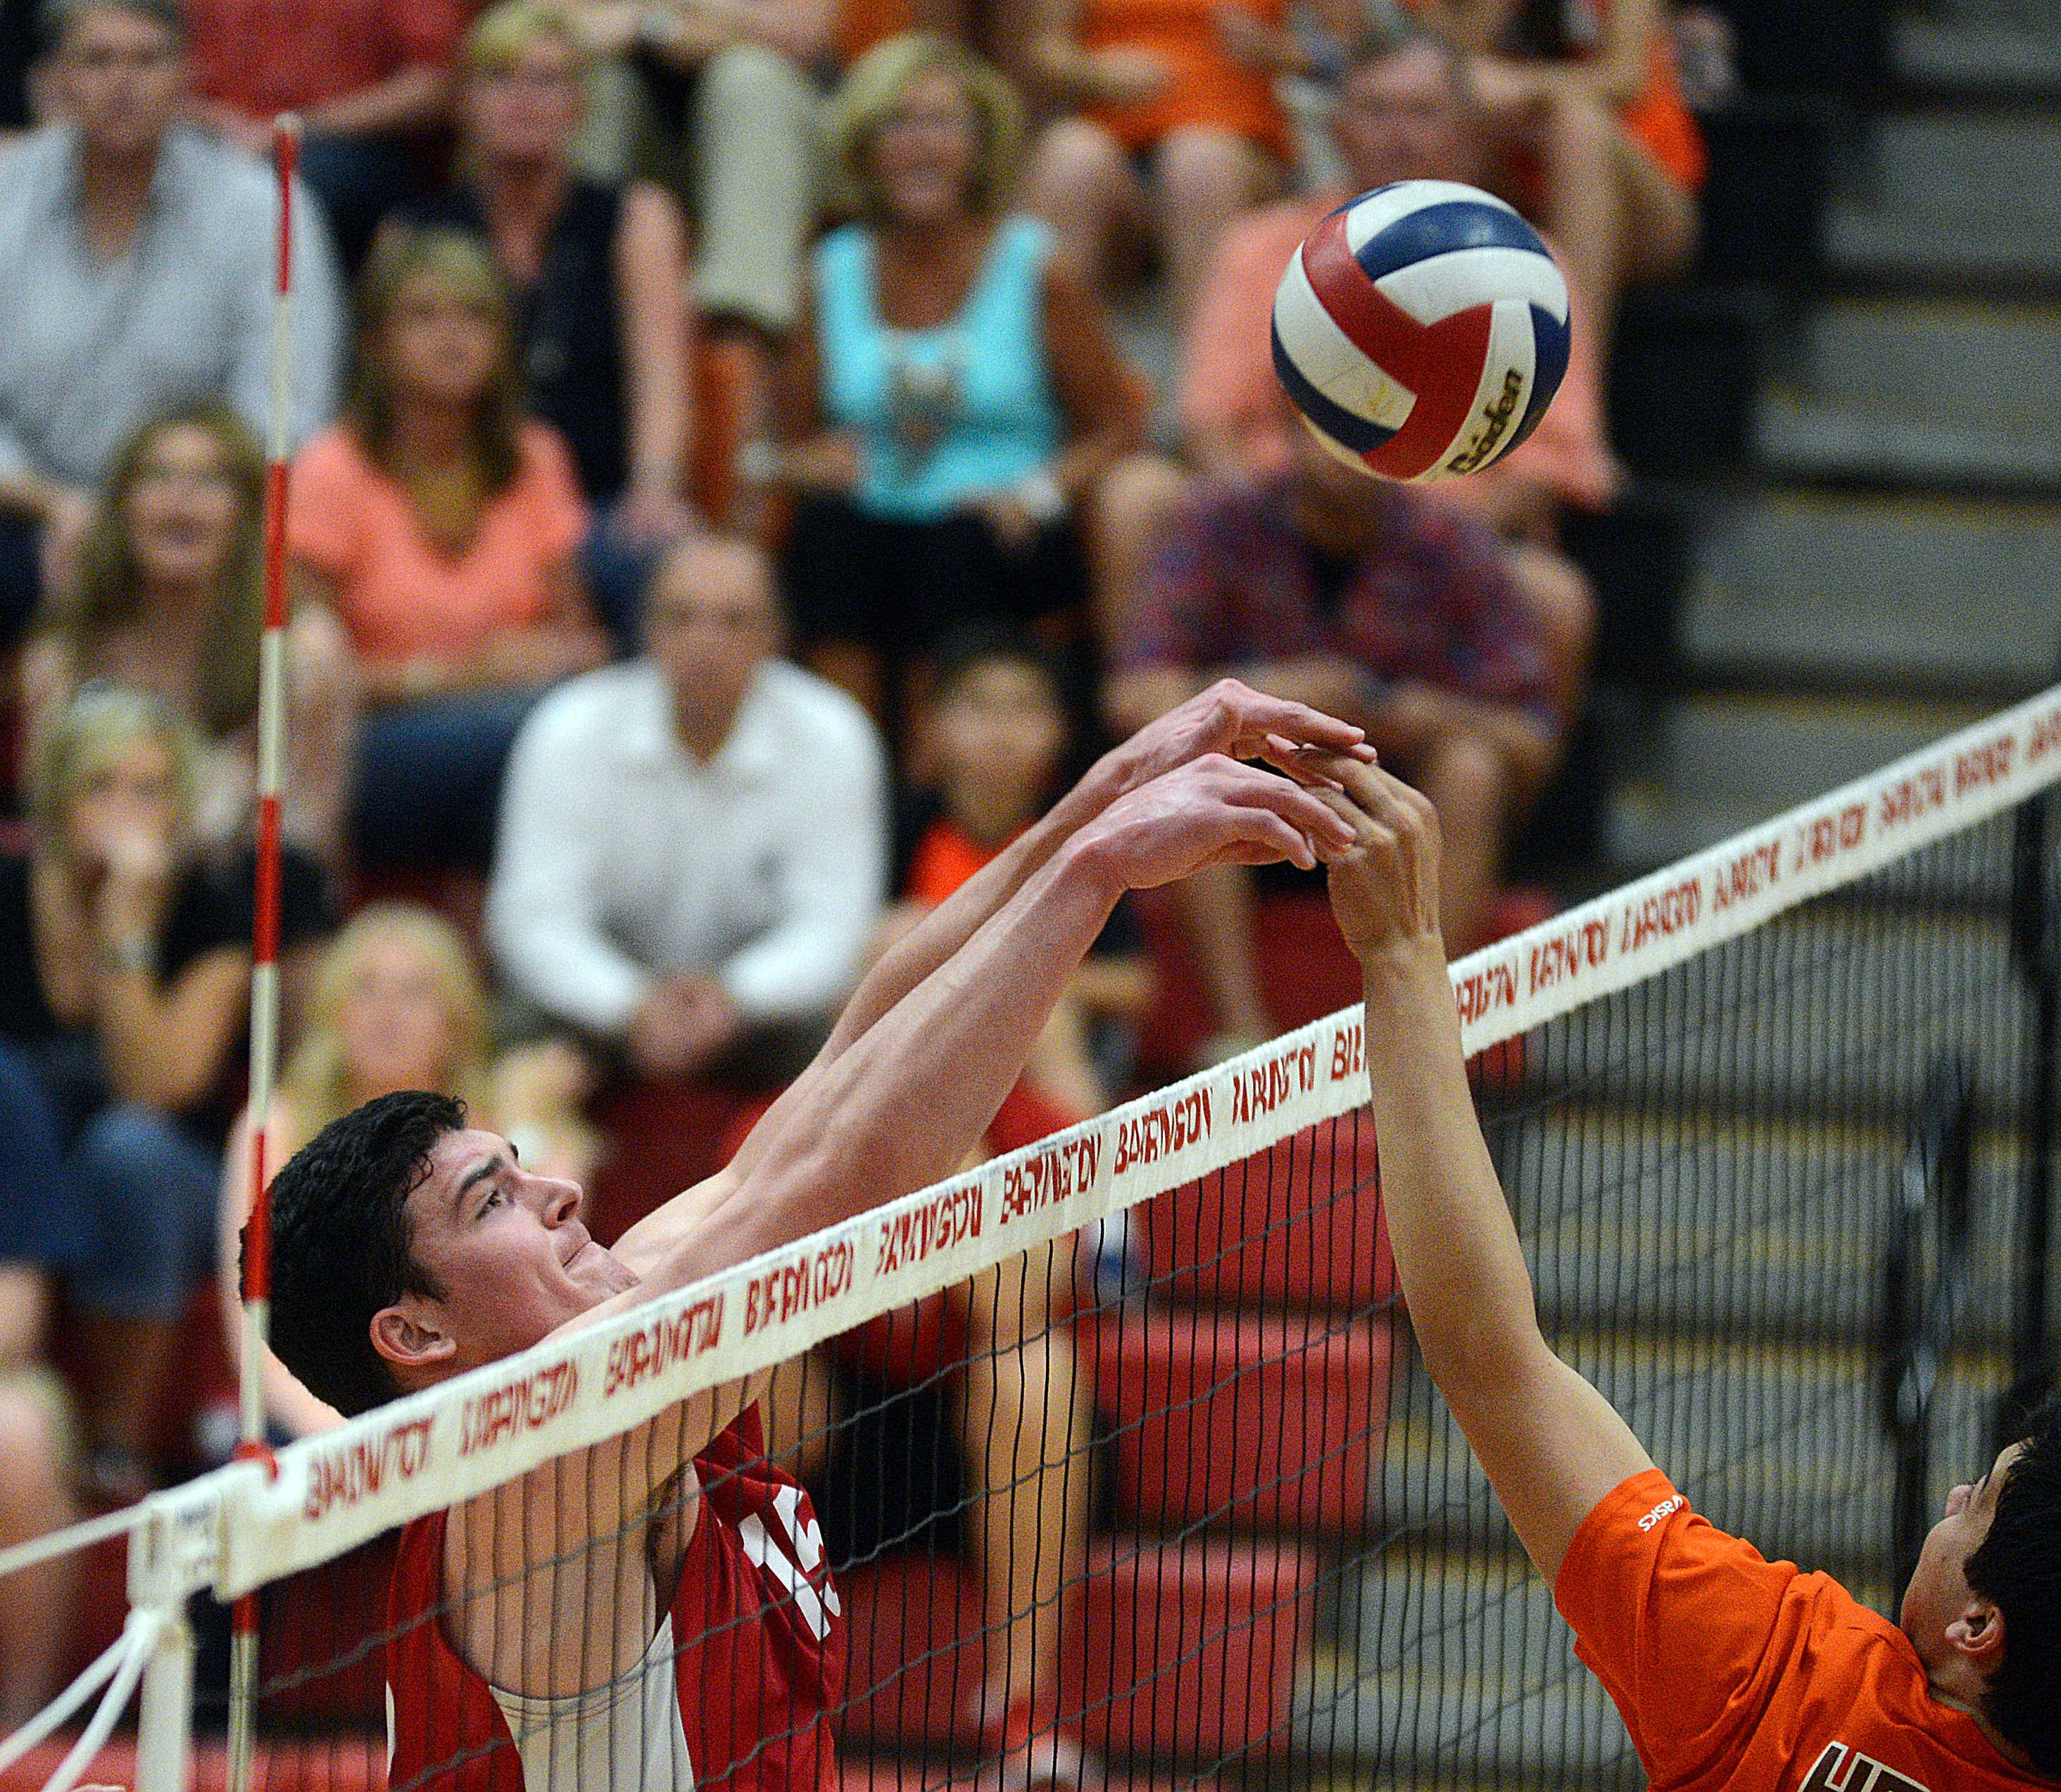 Barrington's Colin Castagna, left, battles at the net with Hersey's Jordan Saeed, right, during Wednesday's MSL championship match.